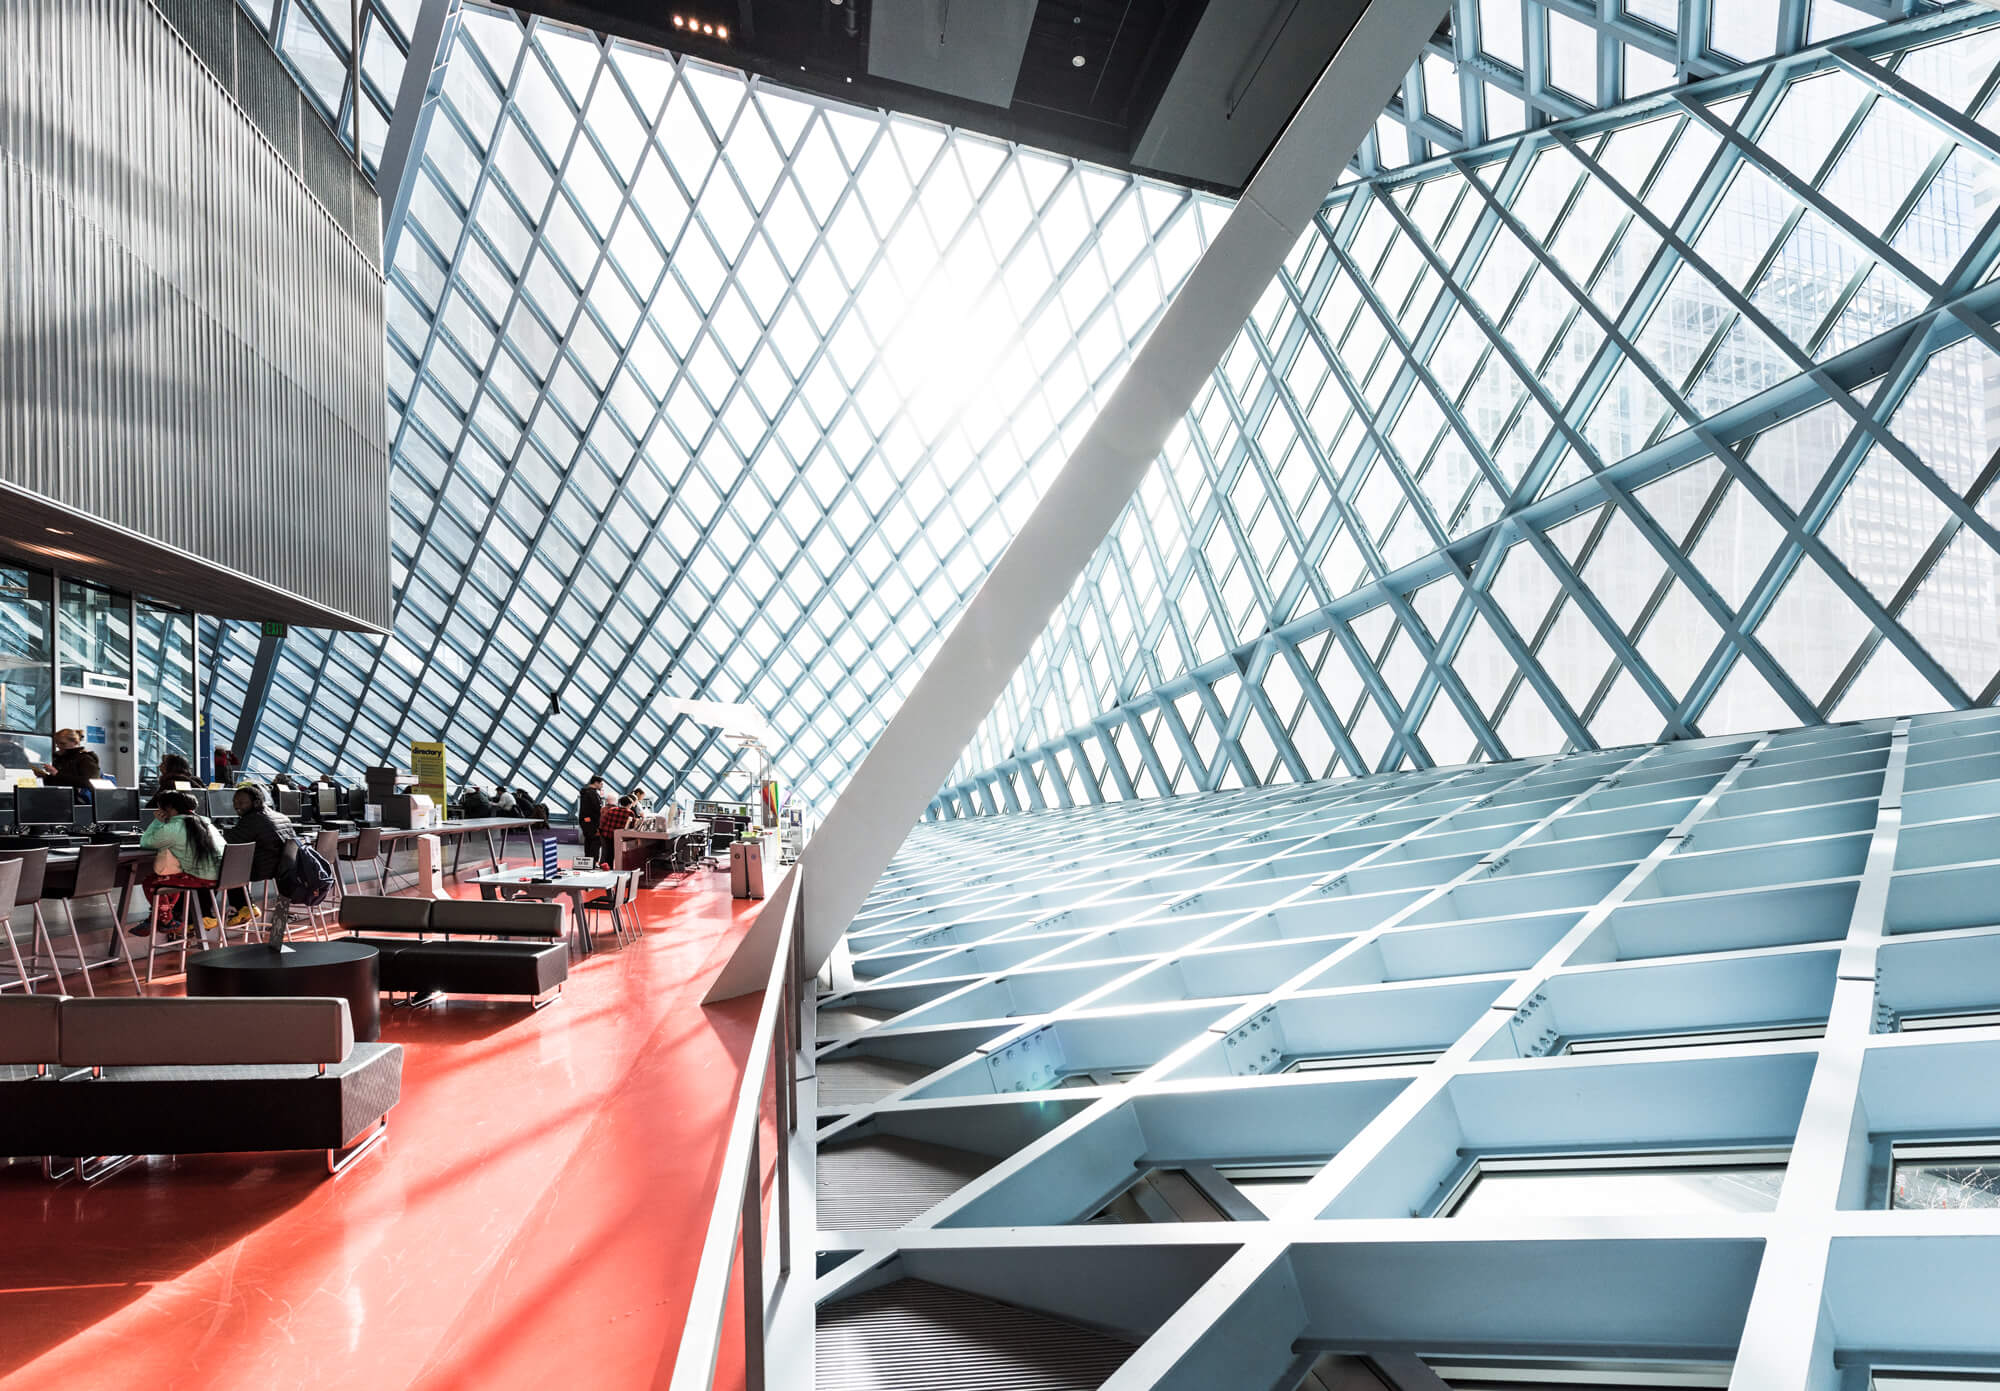 Seattle Public Library | Rem Koolhaas (OMA) and LMN Architects